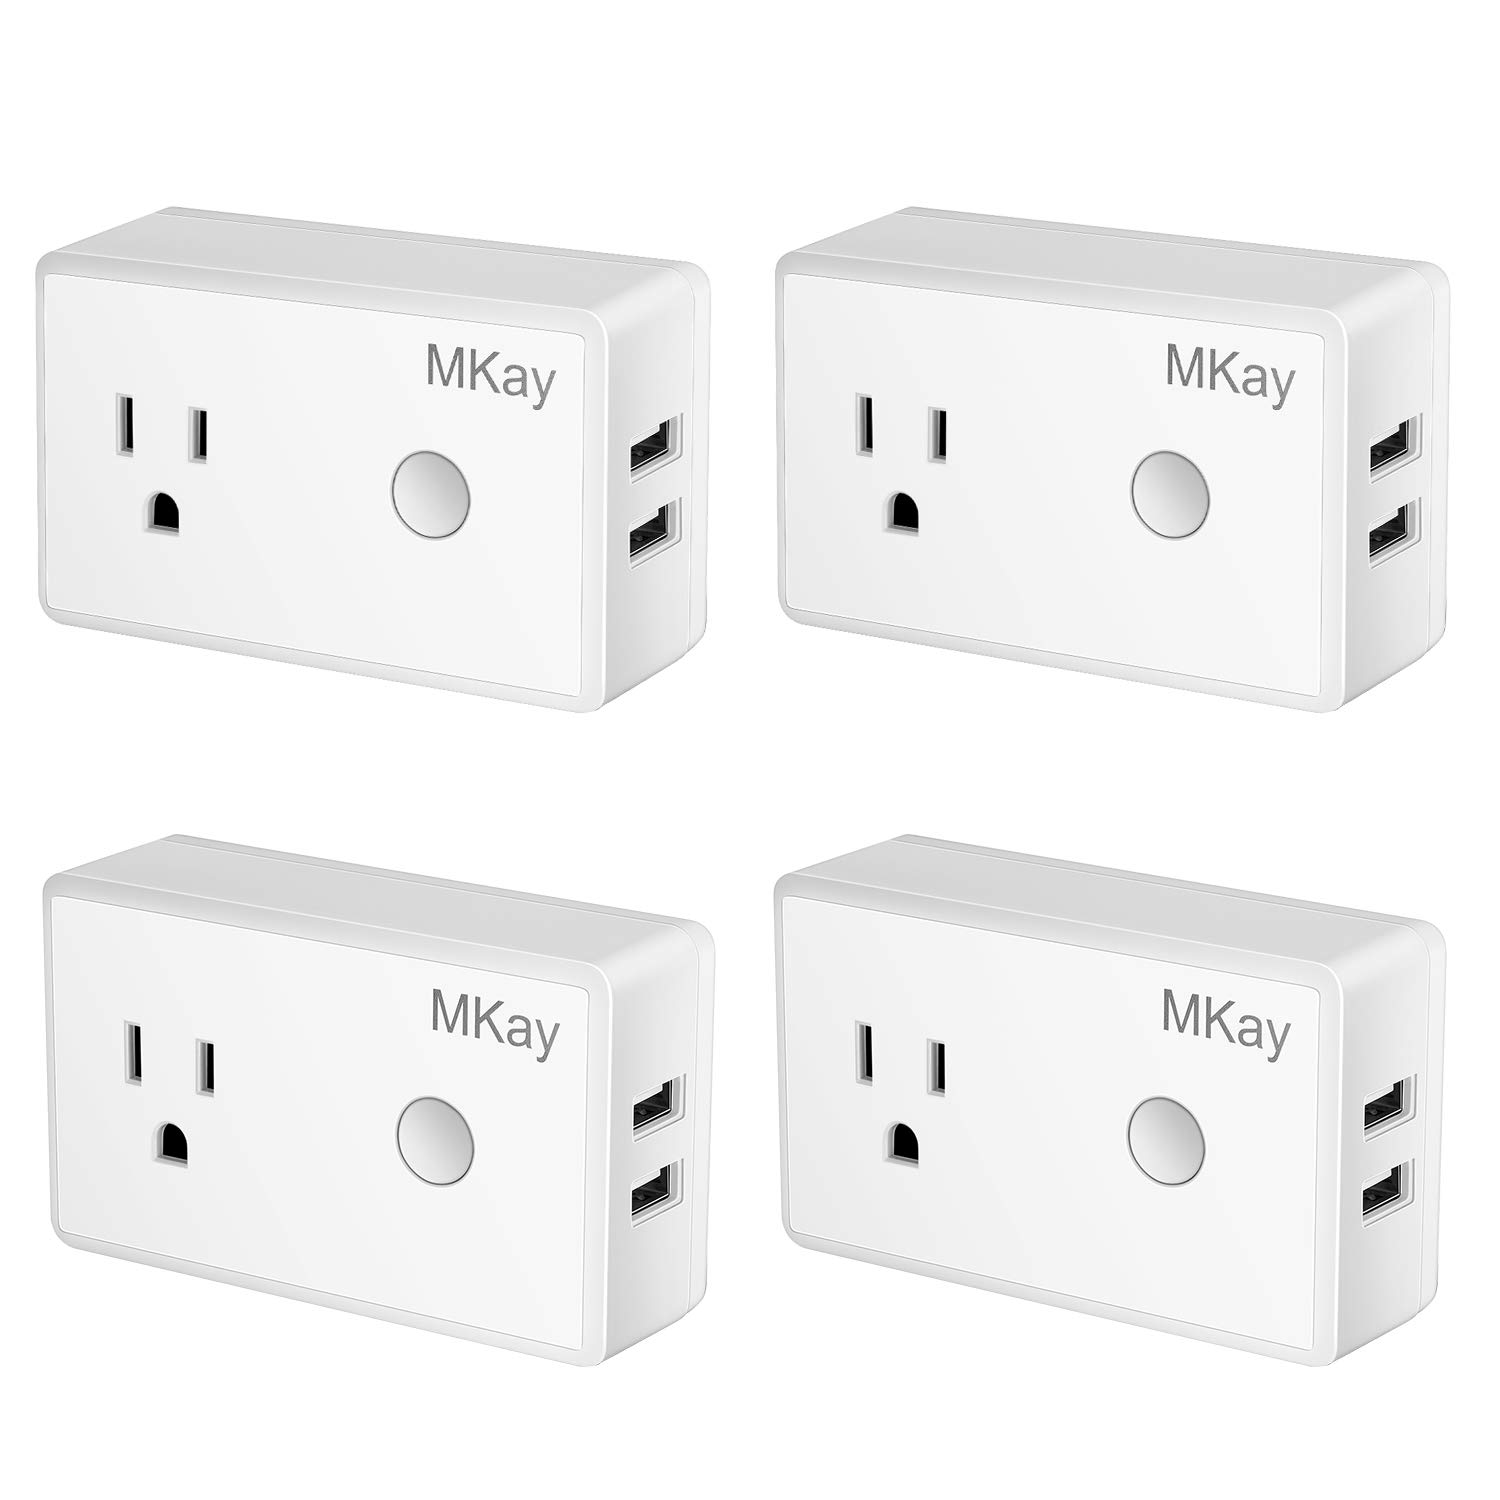 Wifi Smart Plug, Mkay Mini Wireless Outlet Electrical Socket With 2 USB Ports,Compatible with Alexa Echo and Google Home, Remote Control Timer Function On/Off Switch, No Hub Required(4 Pack)